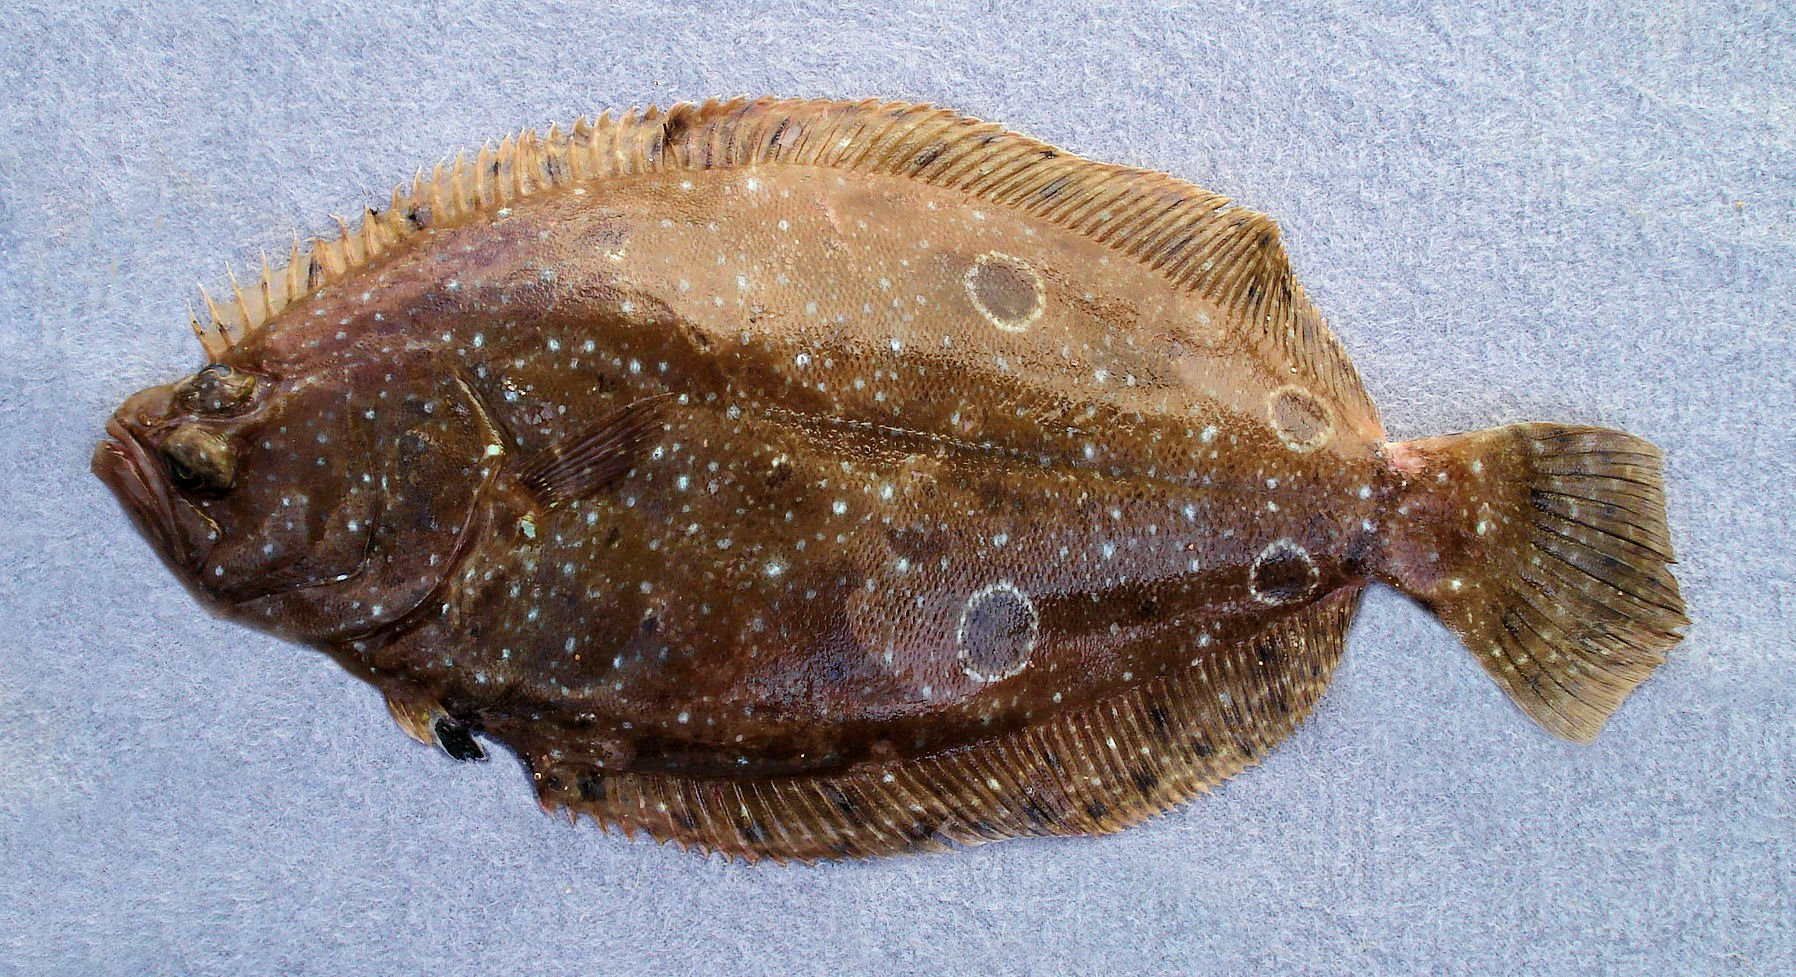 Foureye flounder mexico fish marine life birds and for Picture of a flounder fish